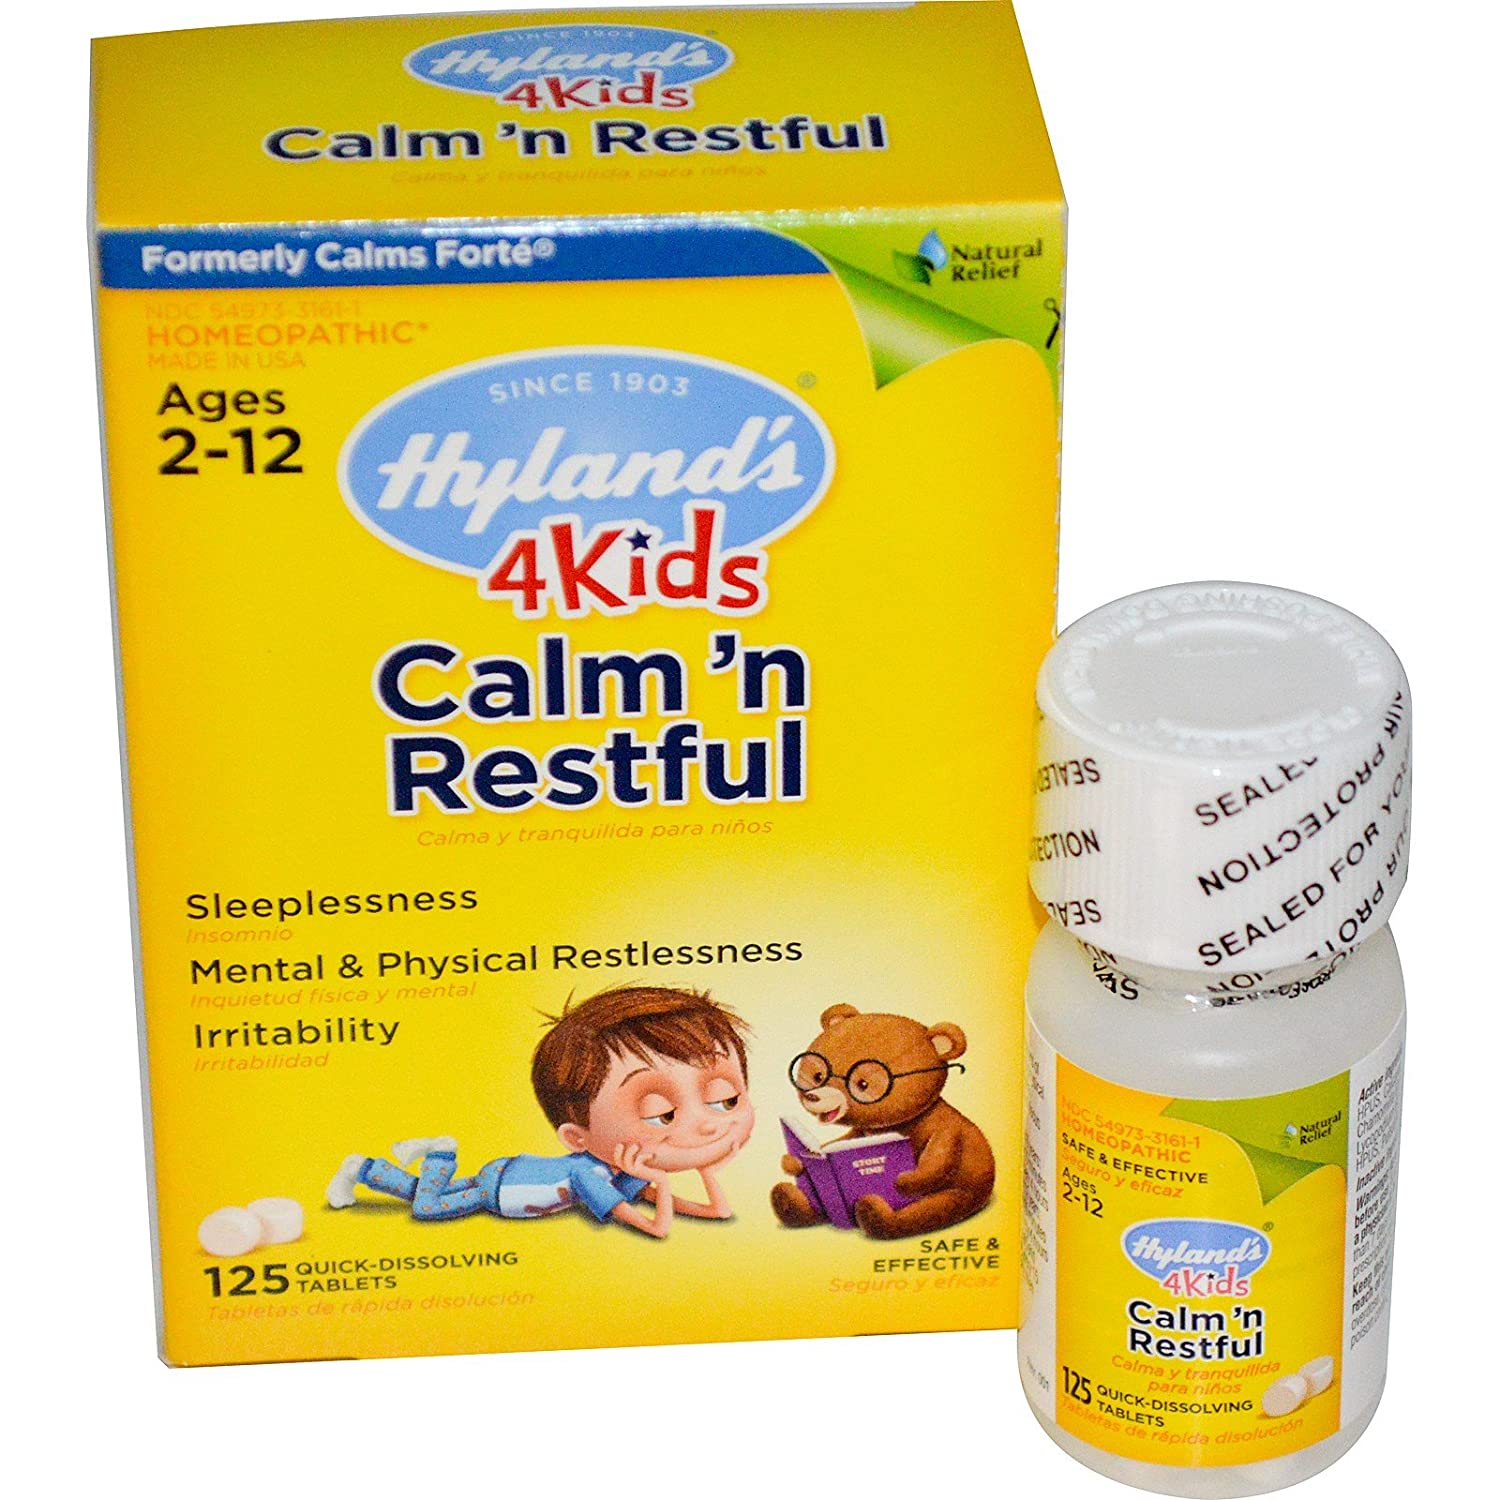 Amazon.com : Hylands, Calm n Restful 4 Kids, 125 Quick-Dissolving Tablets - 2pc : Grocery & Gourmet Food